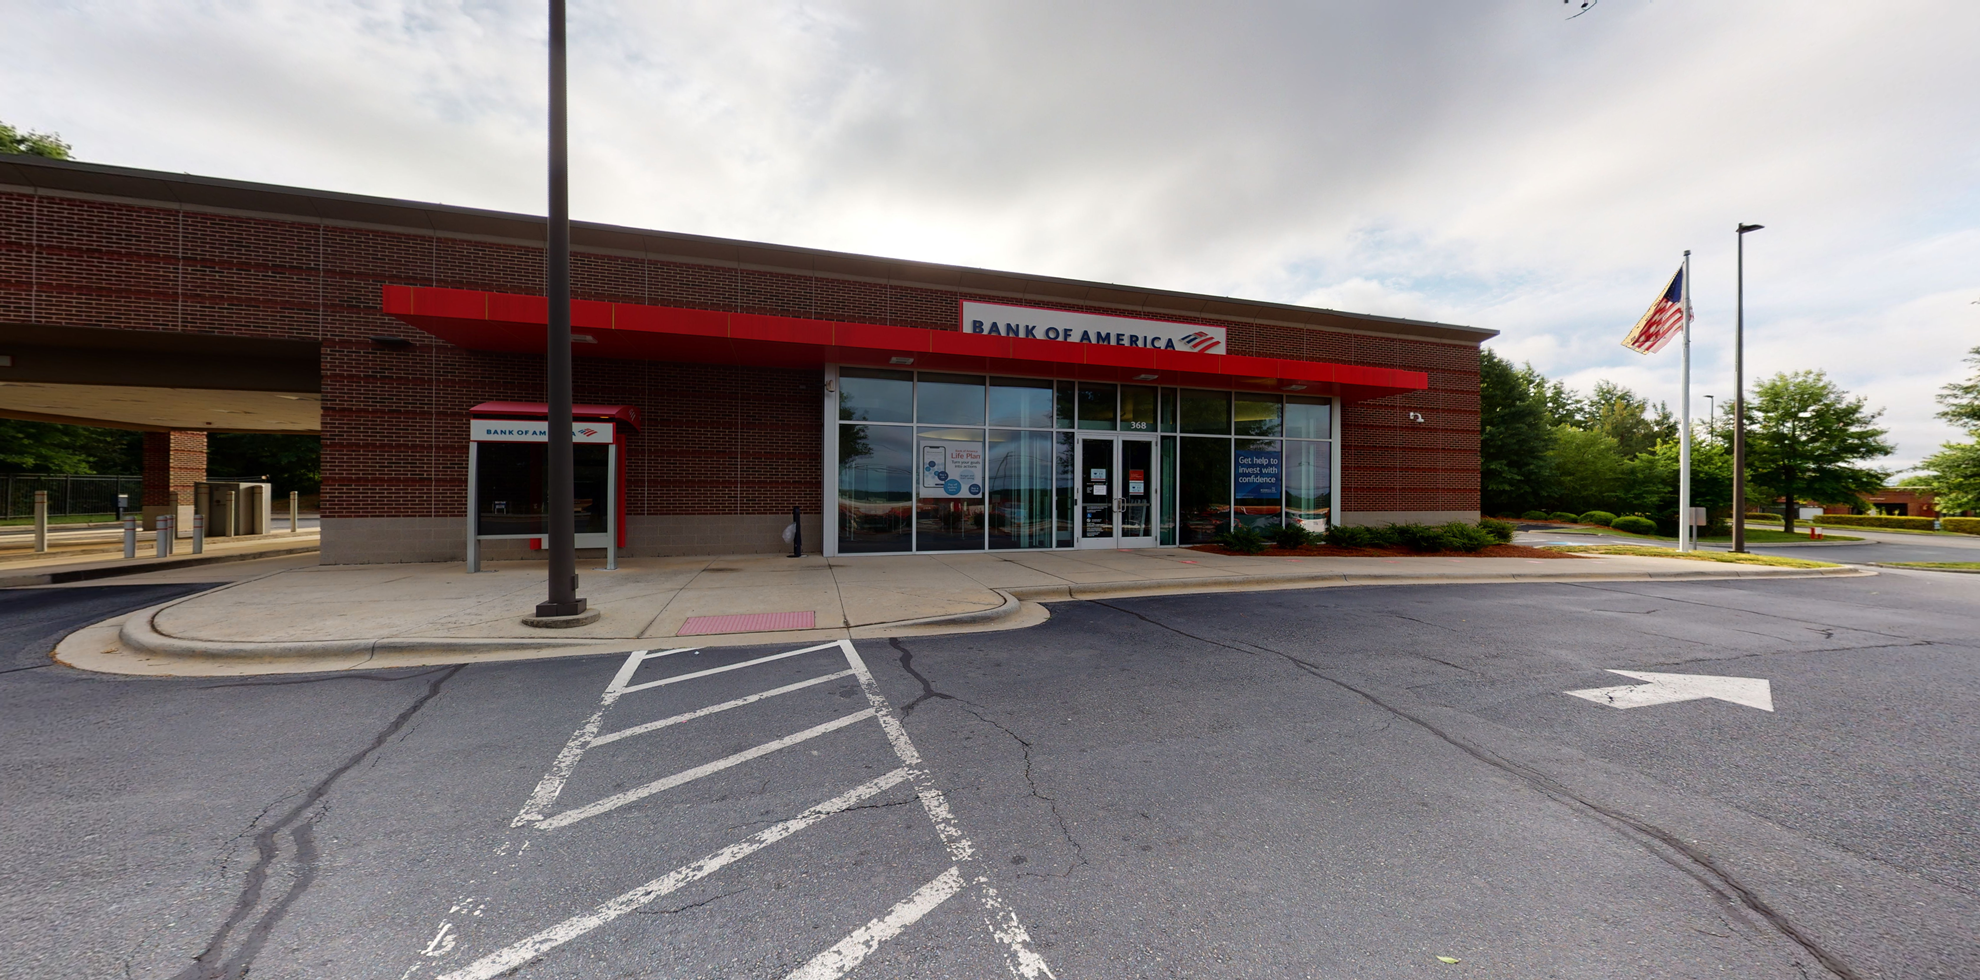 Bank of America financial center with drive-thru ATM   368 George W Liles Pkwy NW, Concord, NC 28027